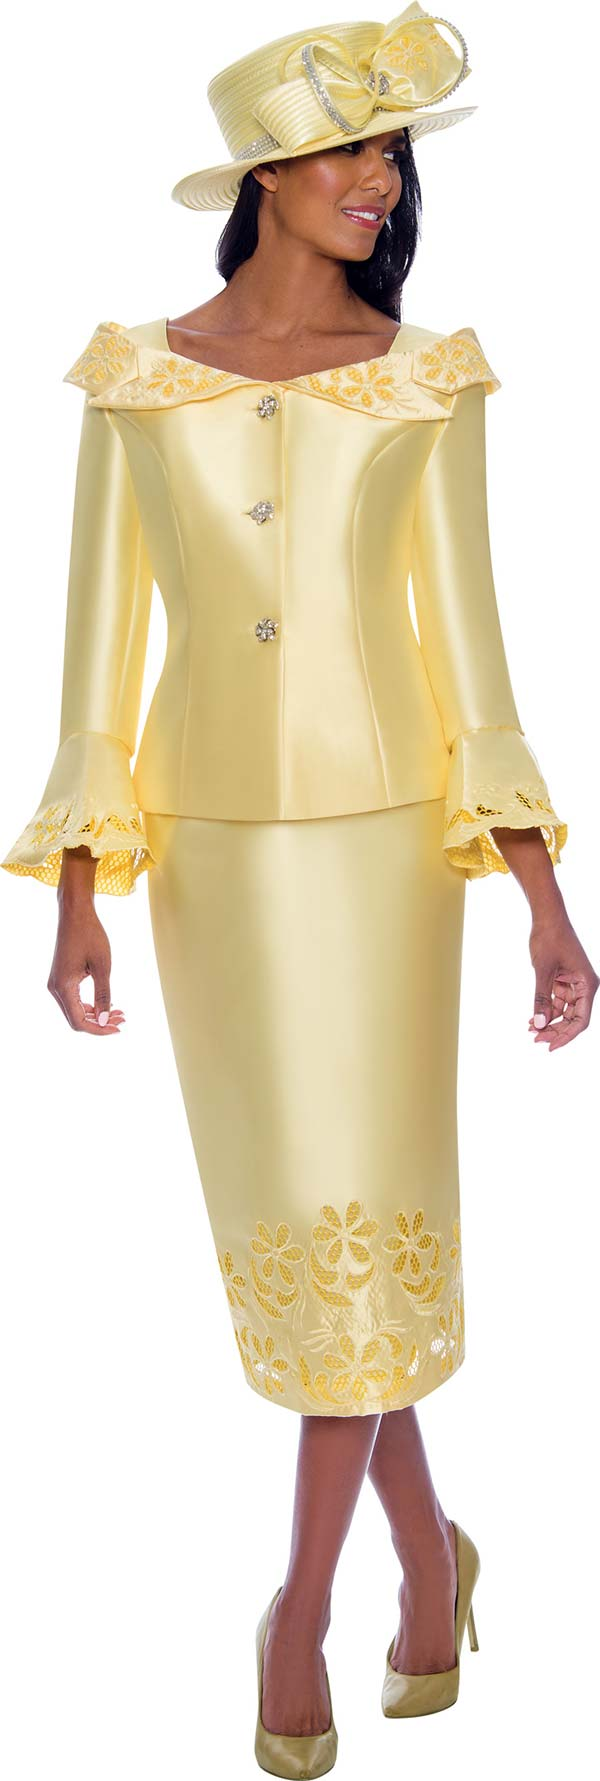 GMI G7862-Yellow - Womens Church Suit With Cut-Out Details And Notched Portrait Collar Bell Cuff Jacket